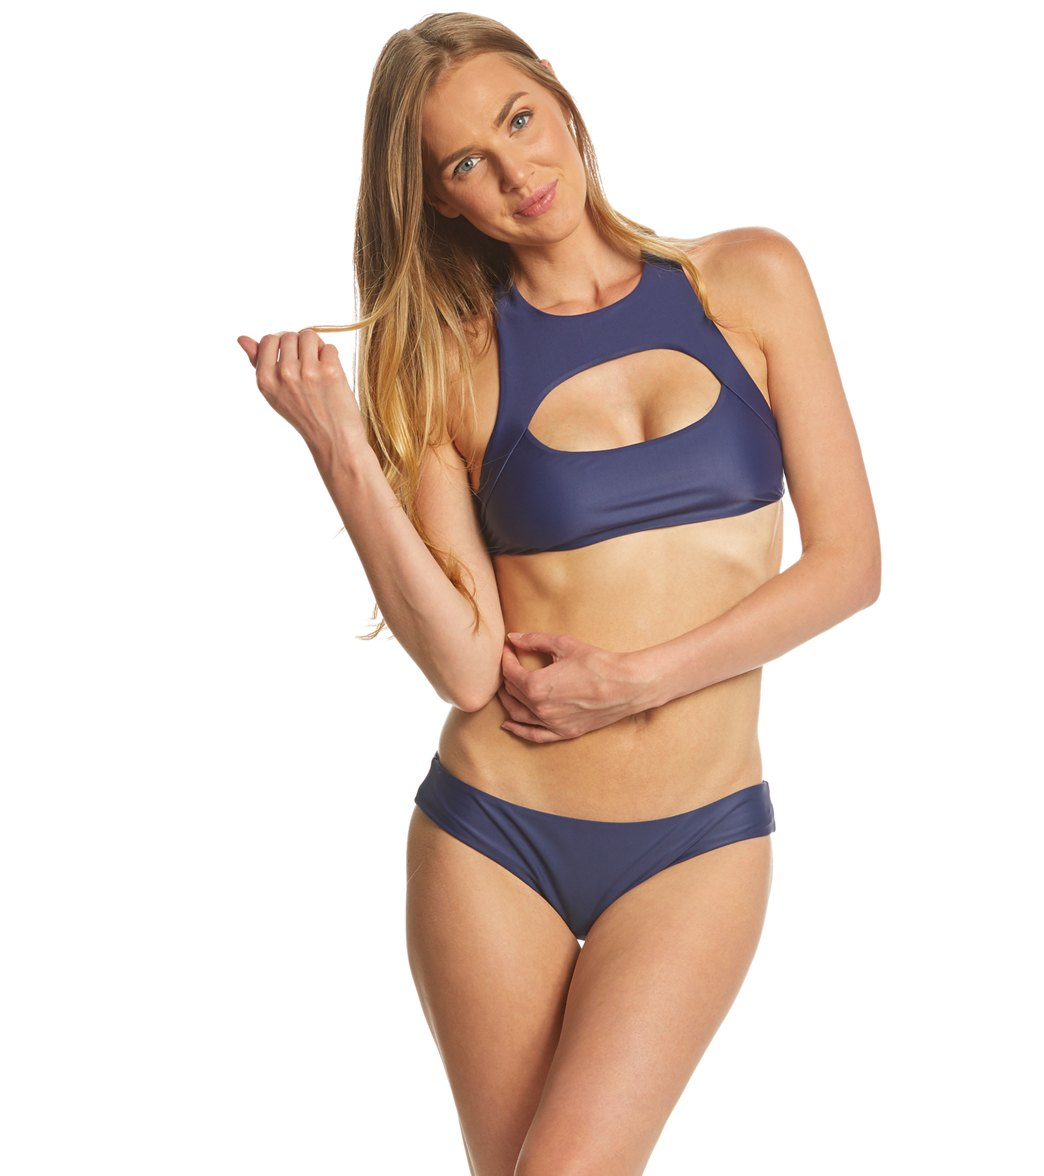 0160714c15 Speedo Women s Sydney Racerback Bikini Top at SwimOutlet.com - Free ...